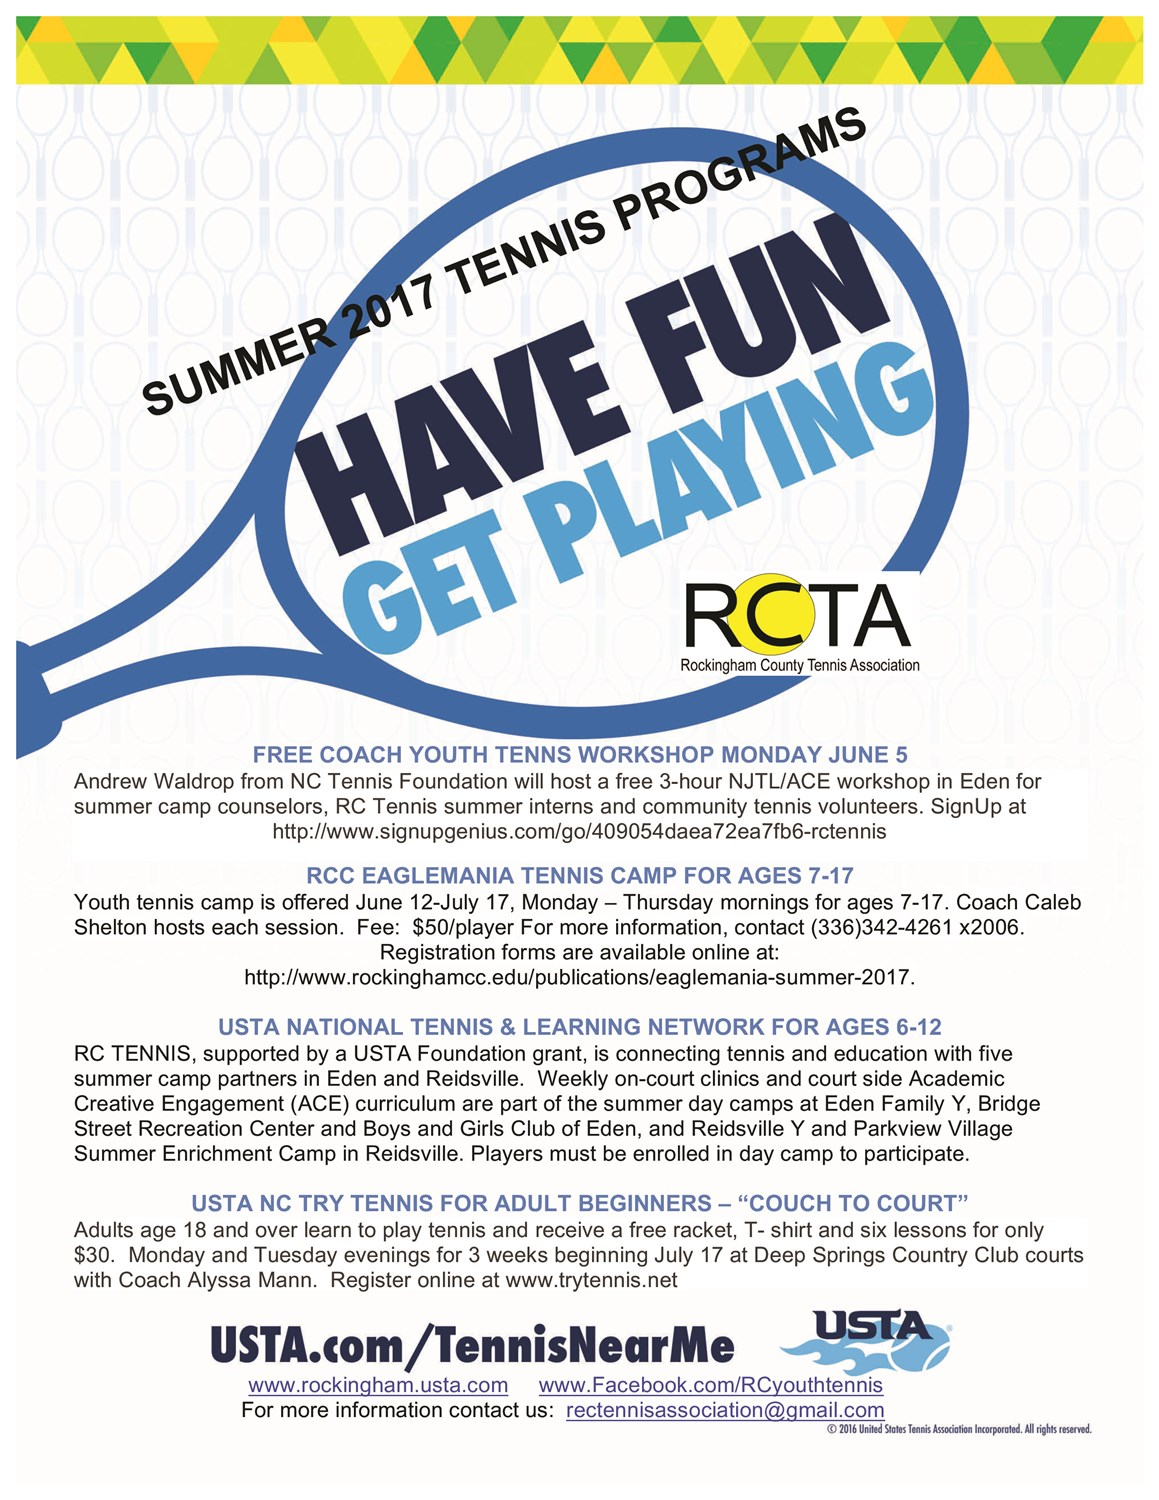 RC_Tennis_SUMMER_2017_Program_flyer-page-0